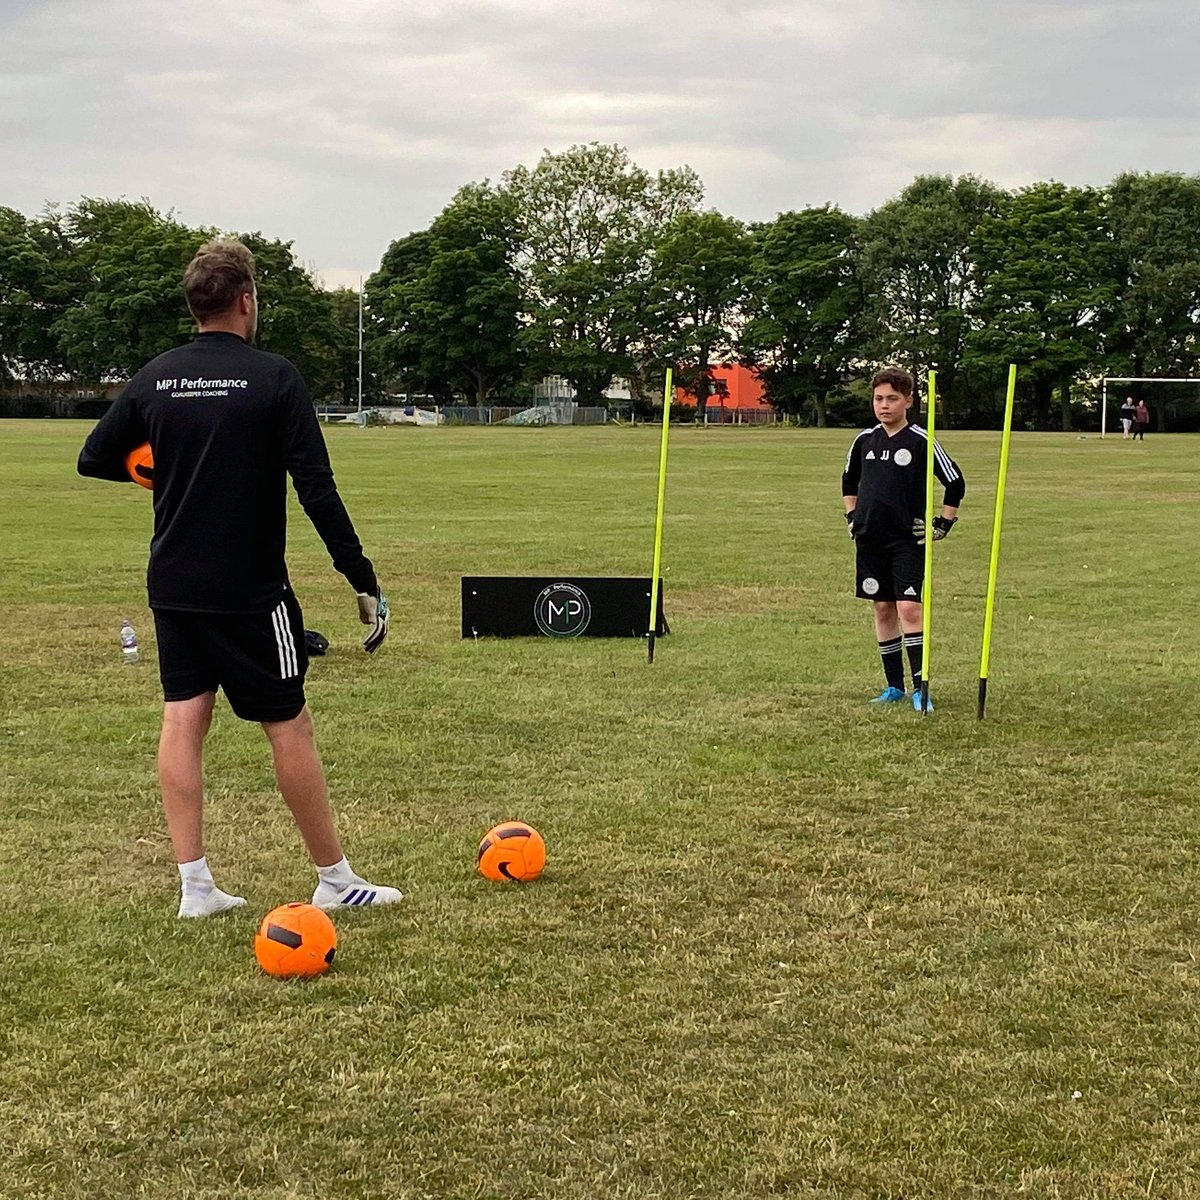 Great to be back out on the pitch tonight   Main focus on getting back up to speed with handling and positioning after a long period away Equipment all wiped down now and ready for another busy day tomorrow http://www.mp1goalkeeping.co.ukpic.twitter.com/Op9Apmk6TQ